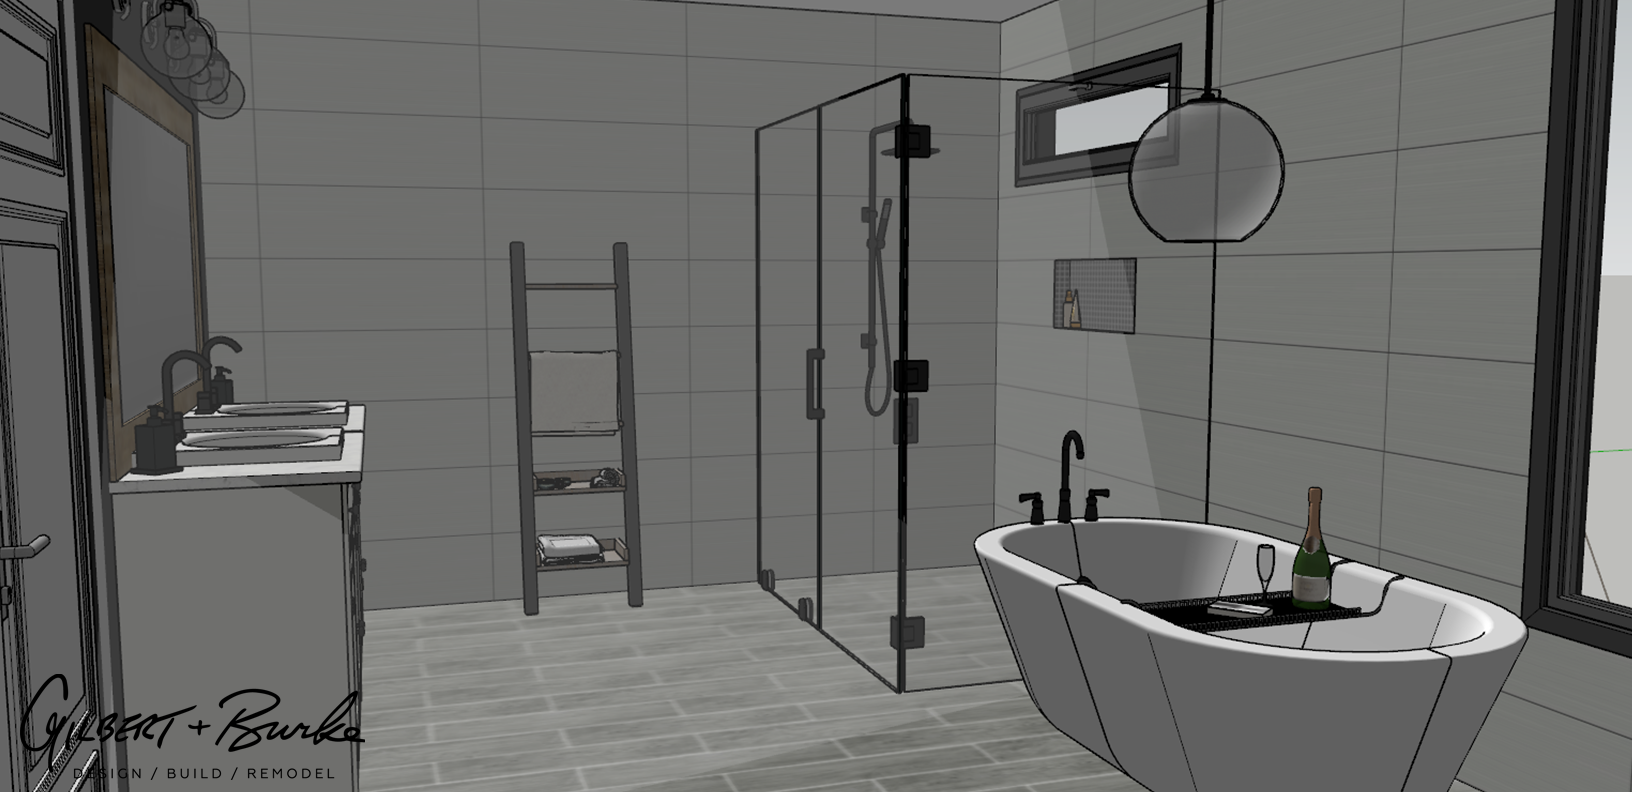 design sketch of a spacious minimalistic bathroom with a sink, white bathtub, and clear standing shower